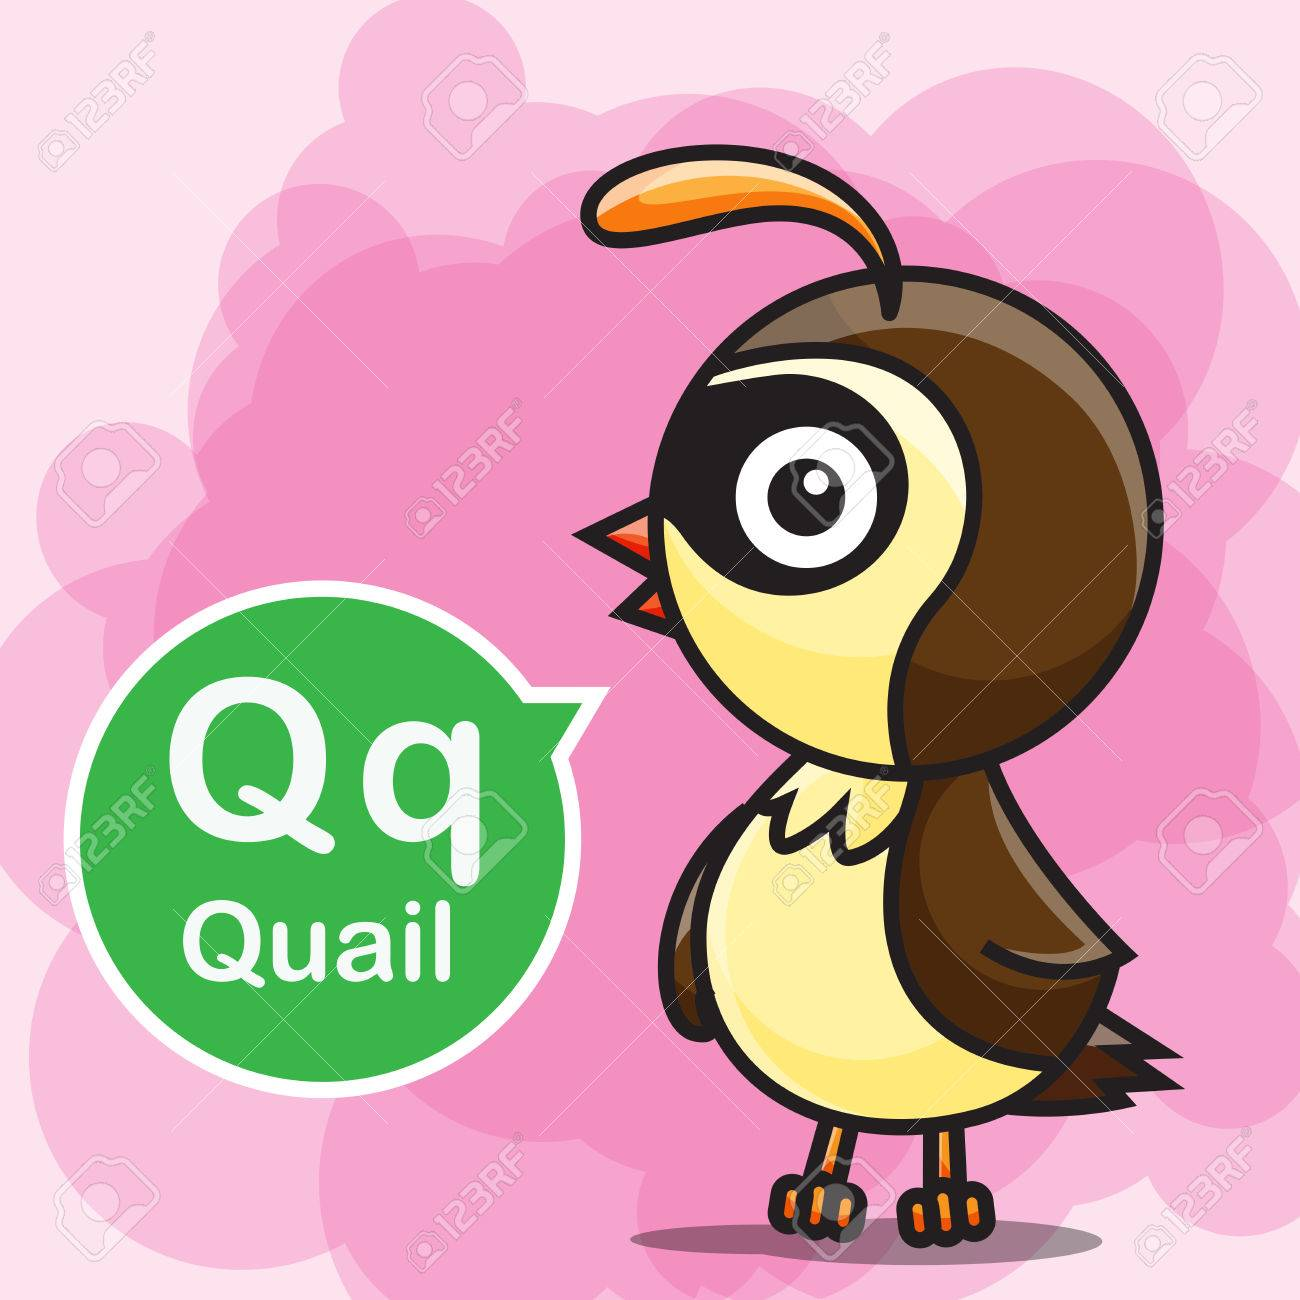 Q Quail Animal Cartoon And Alphabet For Children To Learning ...